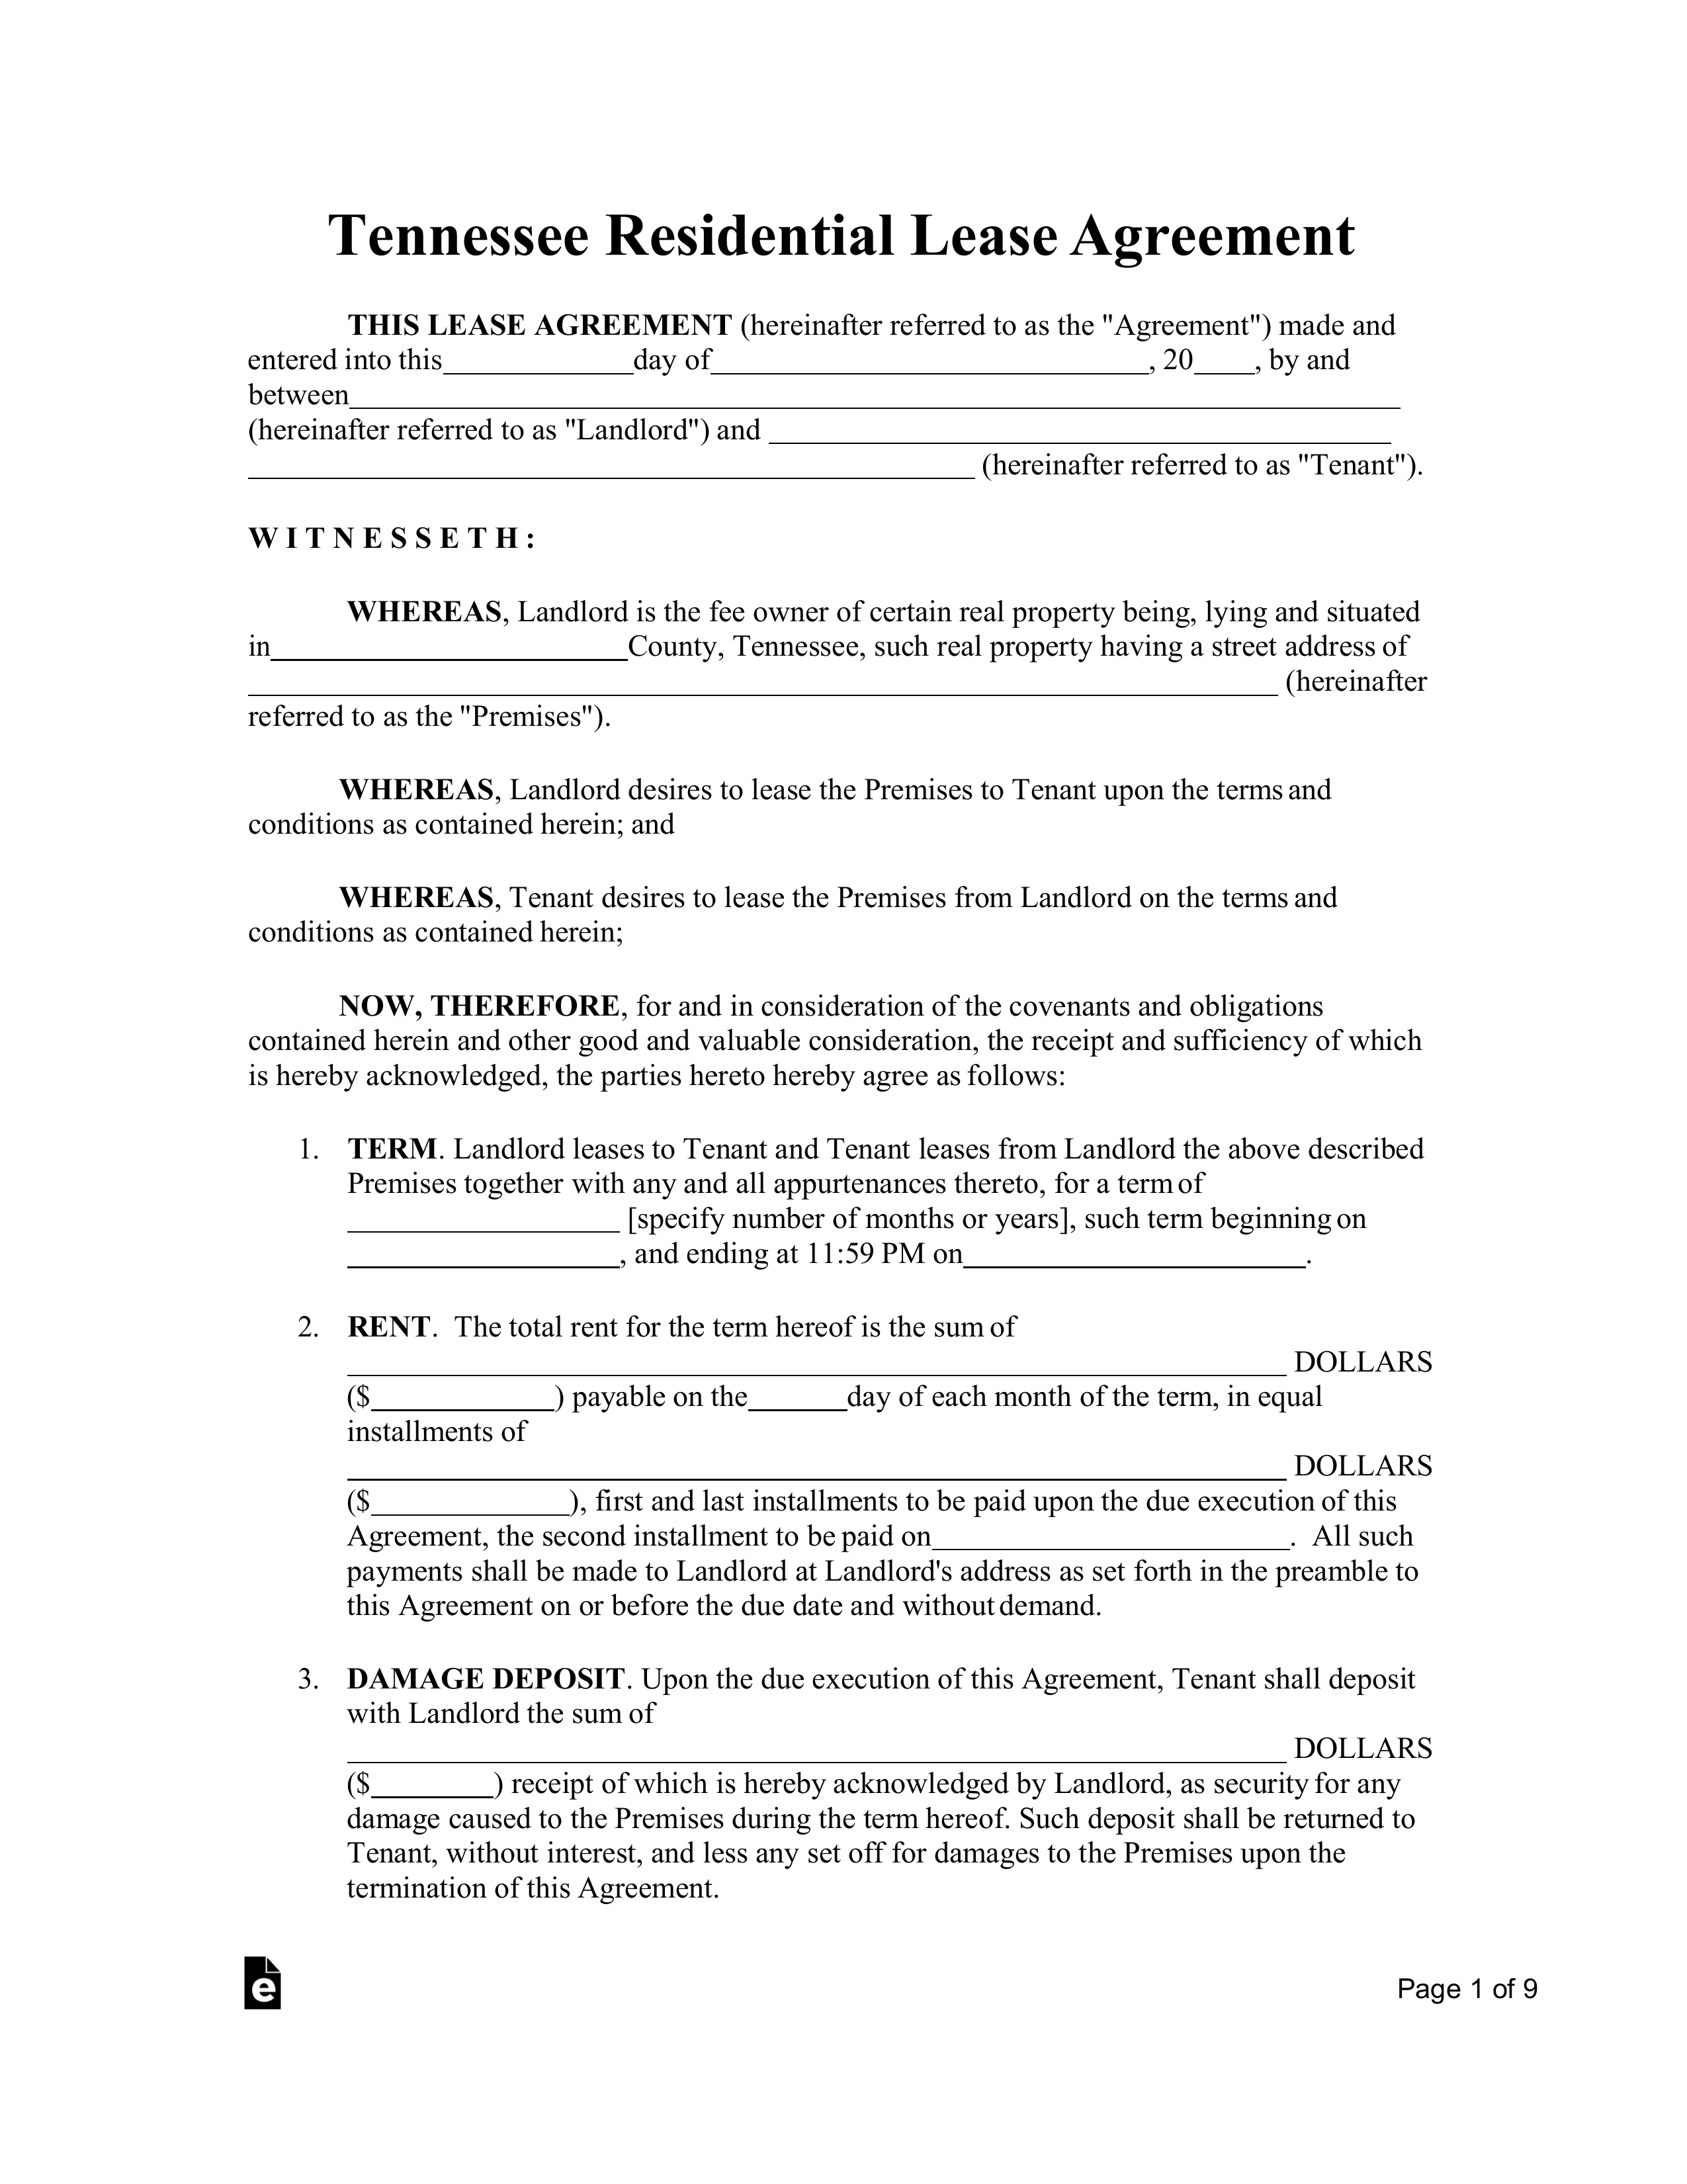 Free Tennessee Standard Residential Lease Agreement Template